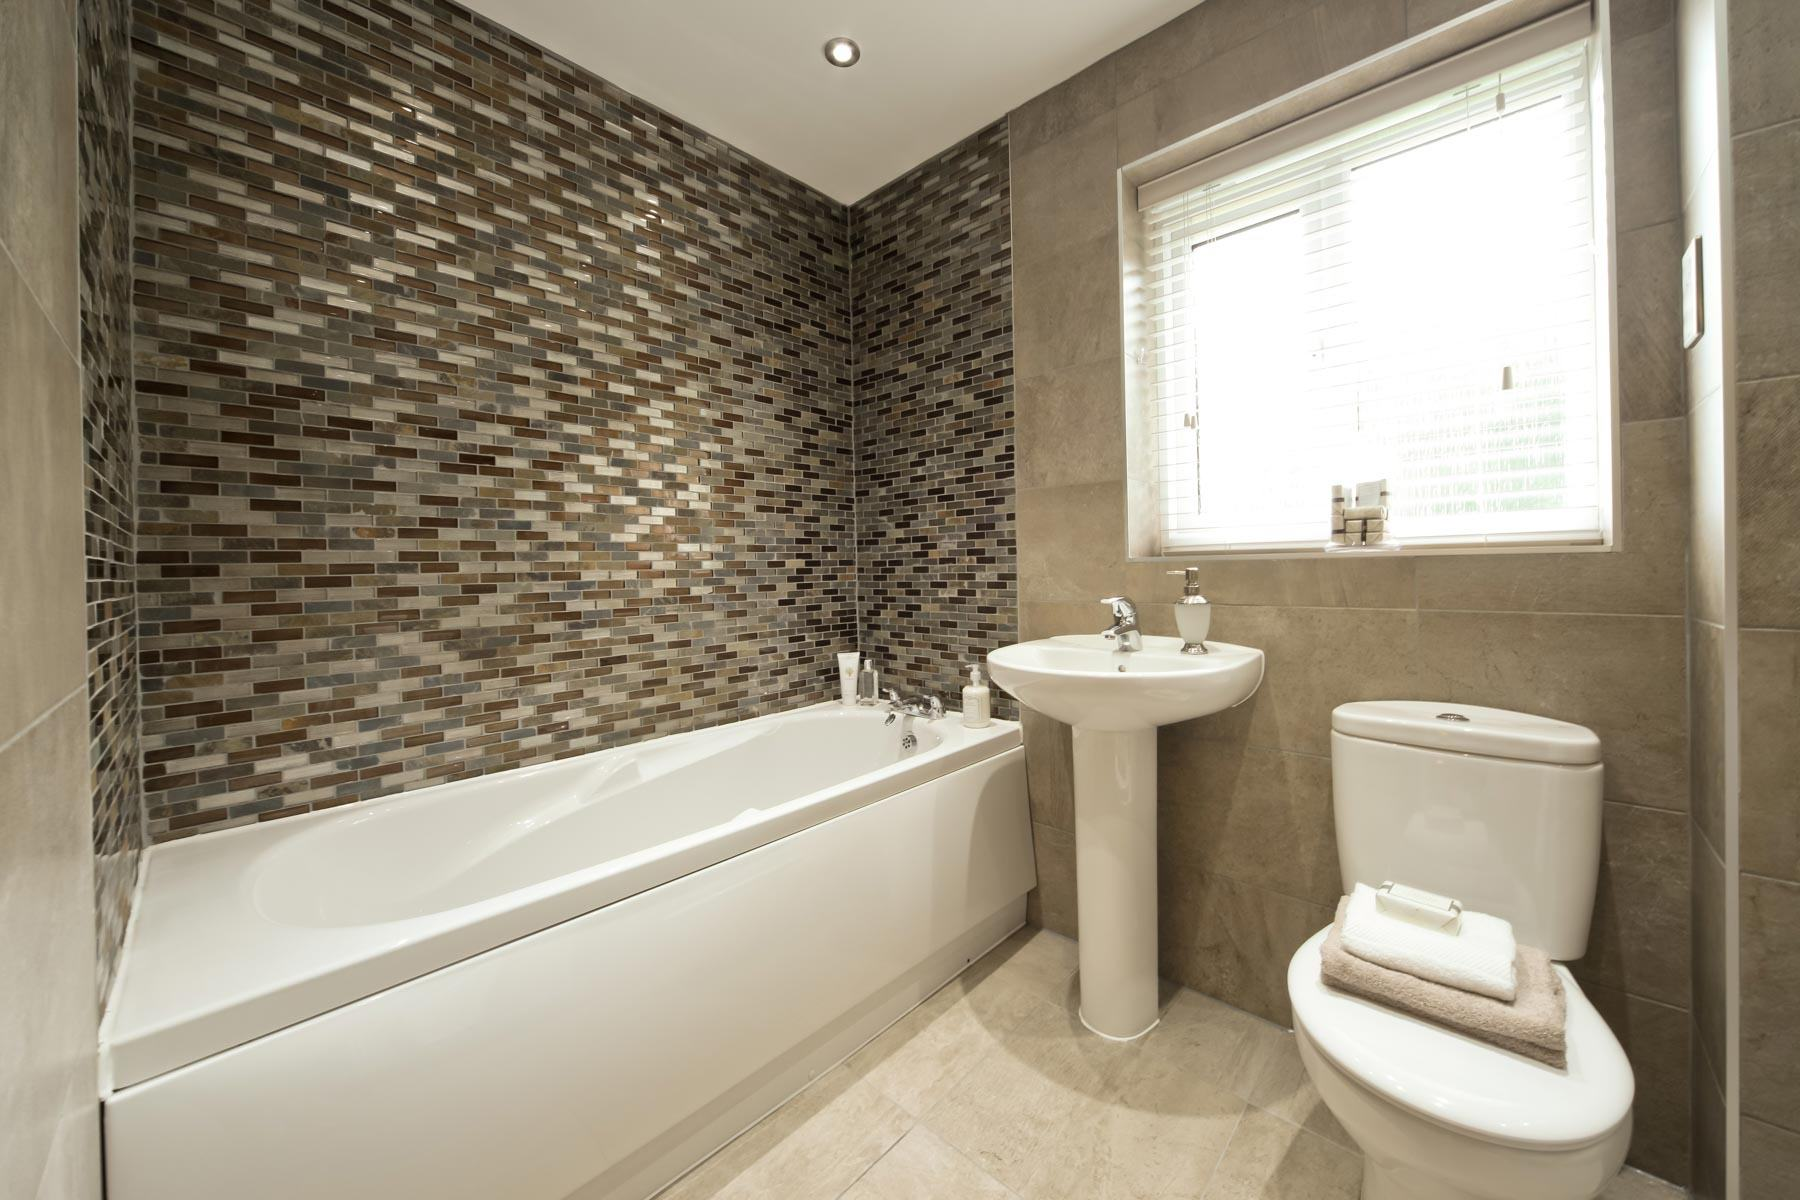 022_OM_Eynsham_Bathroom